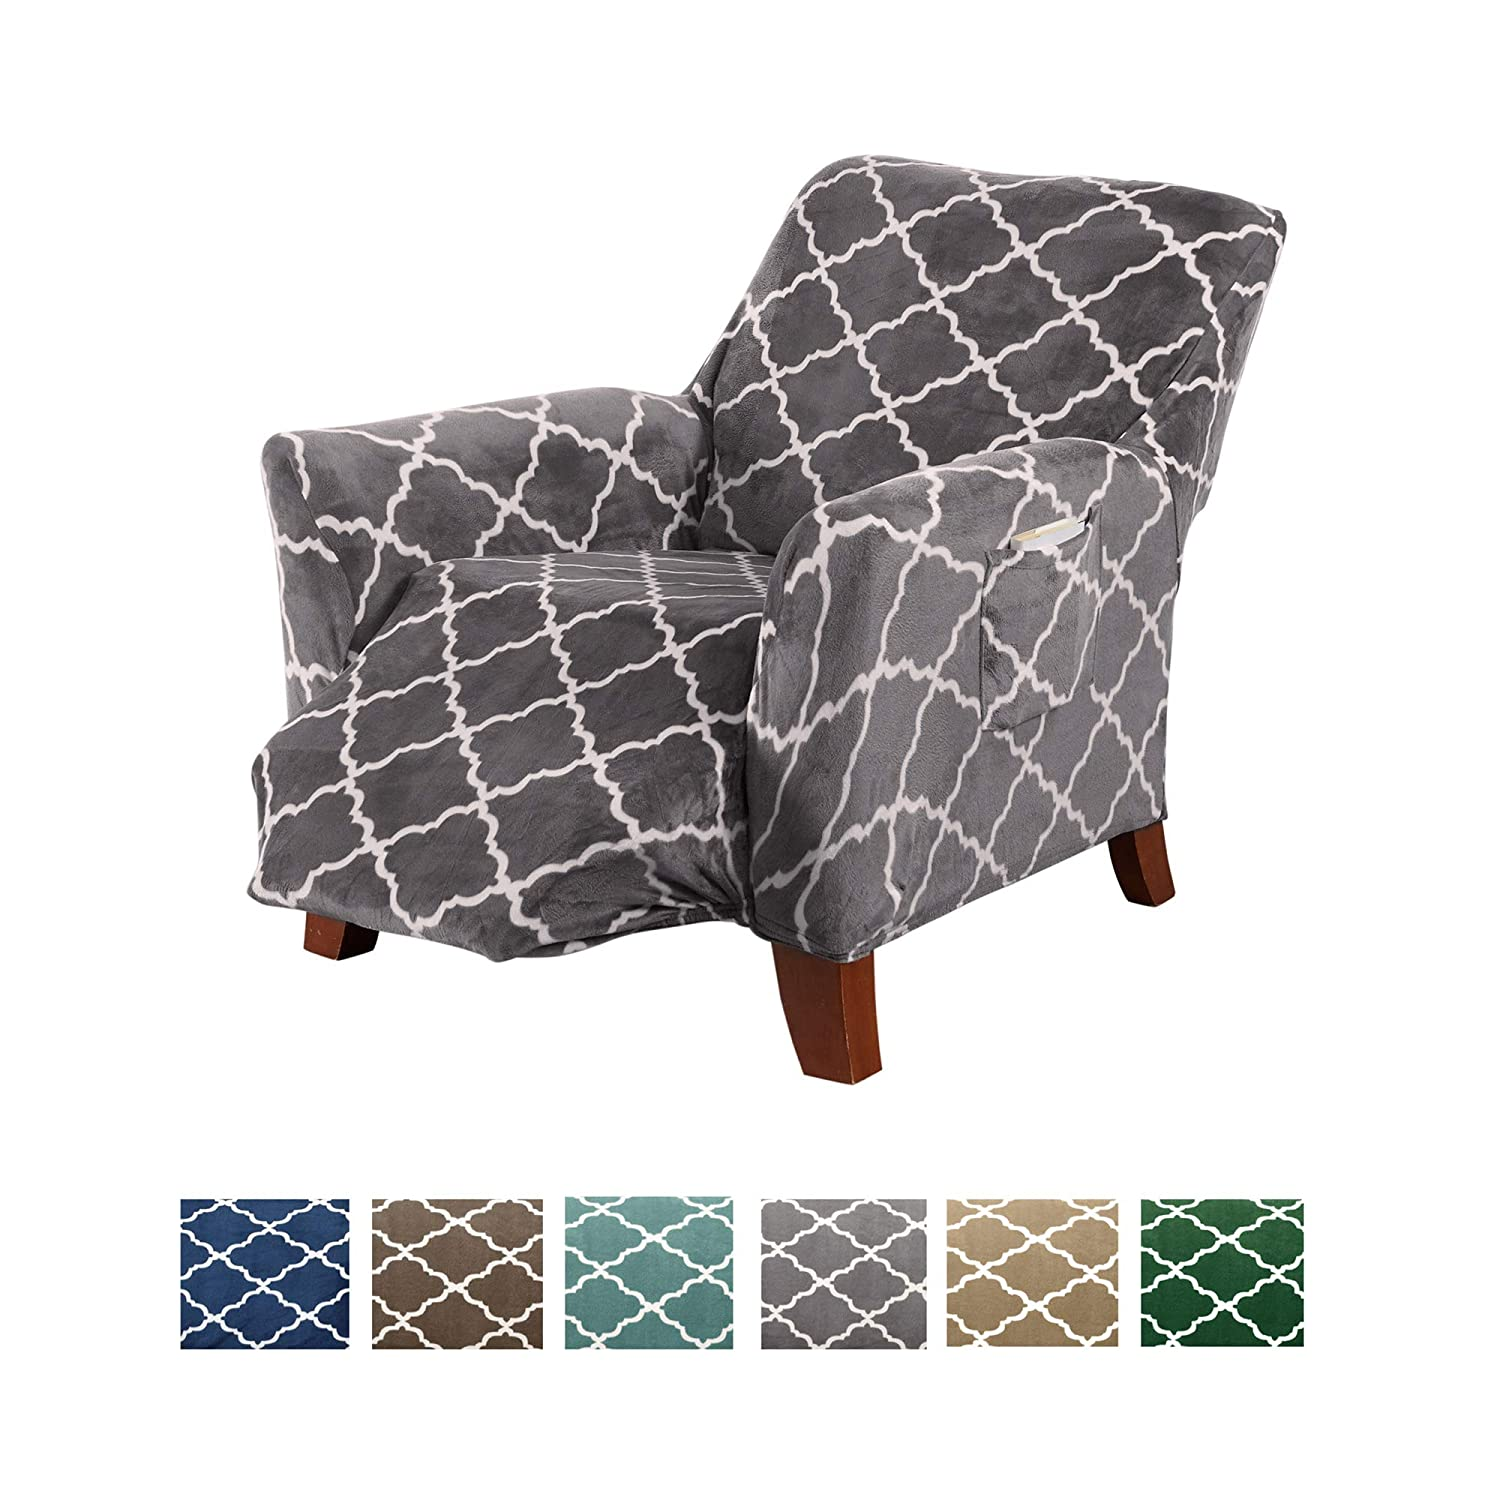 Wondrous Modern Velvet Plush Recliner Slipcover Strapless One Piece Stretch Recliner Cover Recliner Cover For Living Room Magnolia Collection Slipcover Theyellowbook Wood Chair Design Ideas Theyellowbookinfo